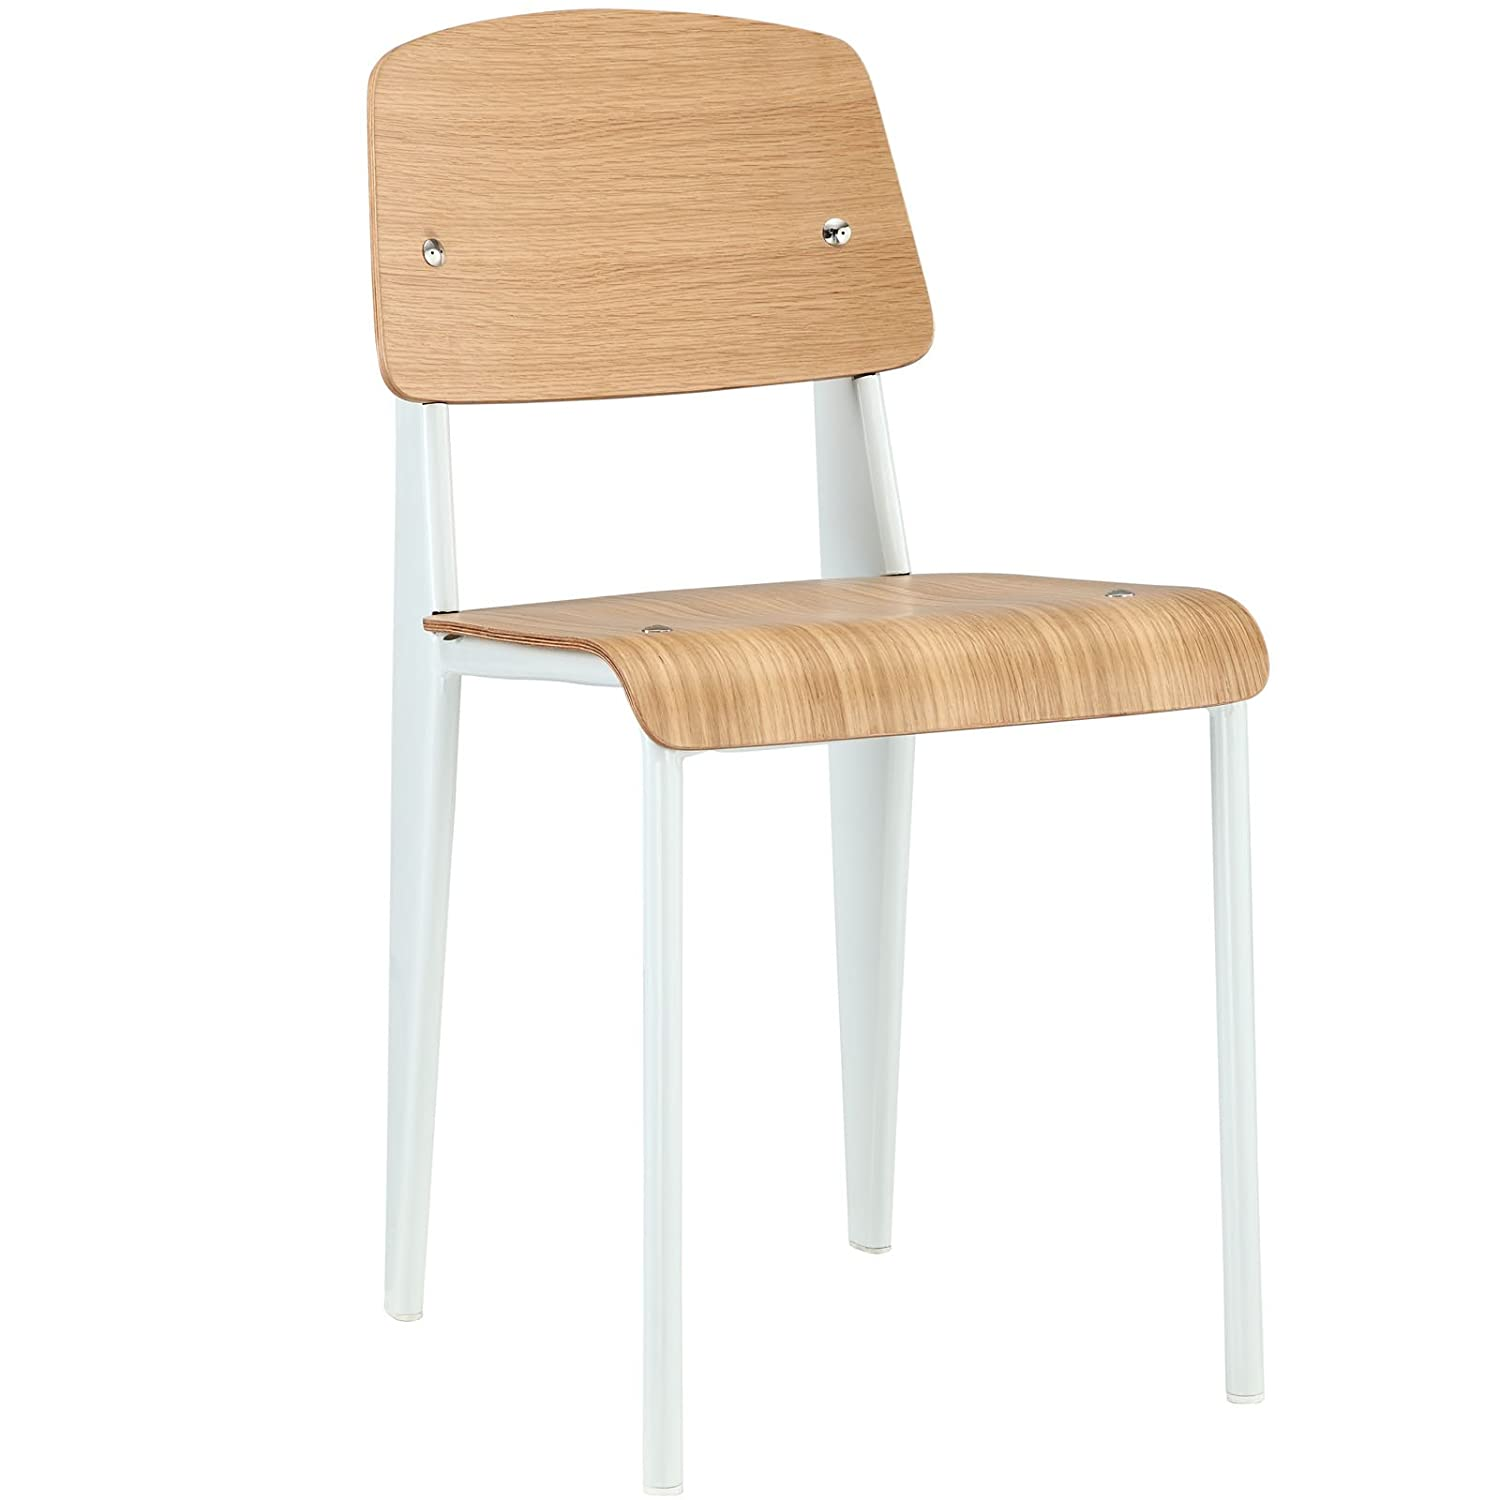 Modway Cabin Modern Wood and Metal Kitchen and Dining Room Chair in Natural White